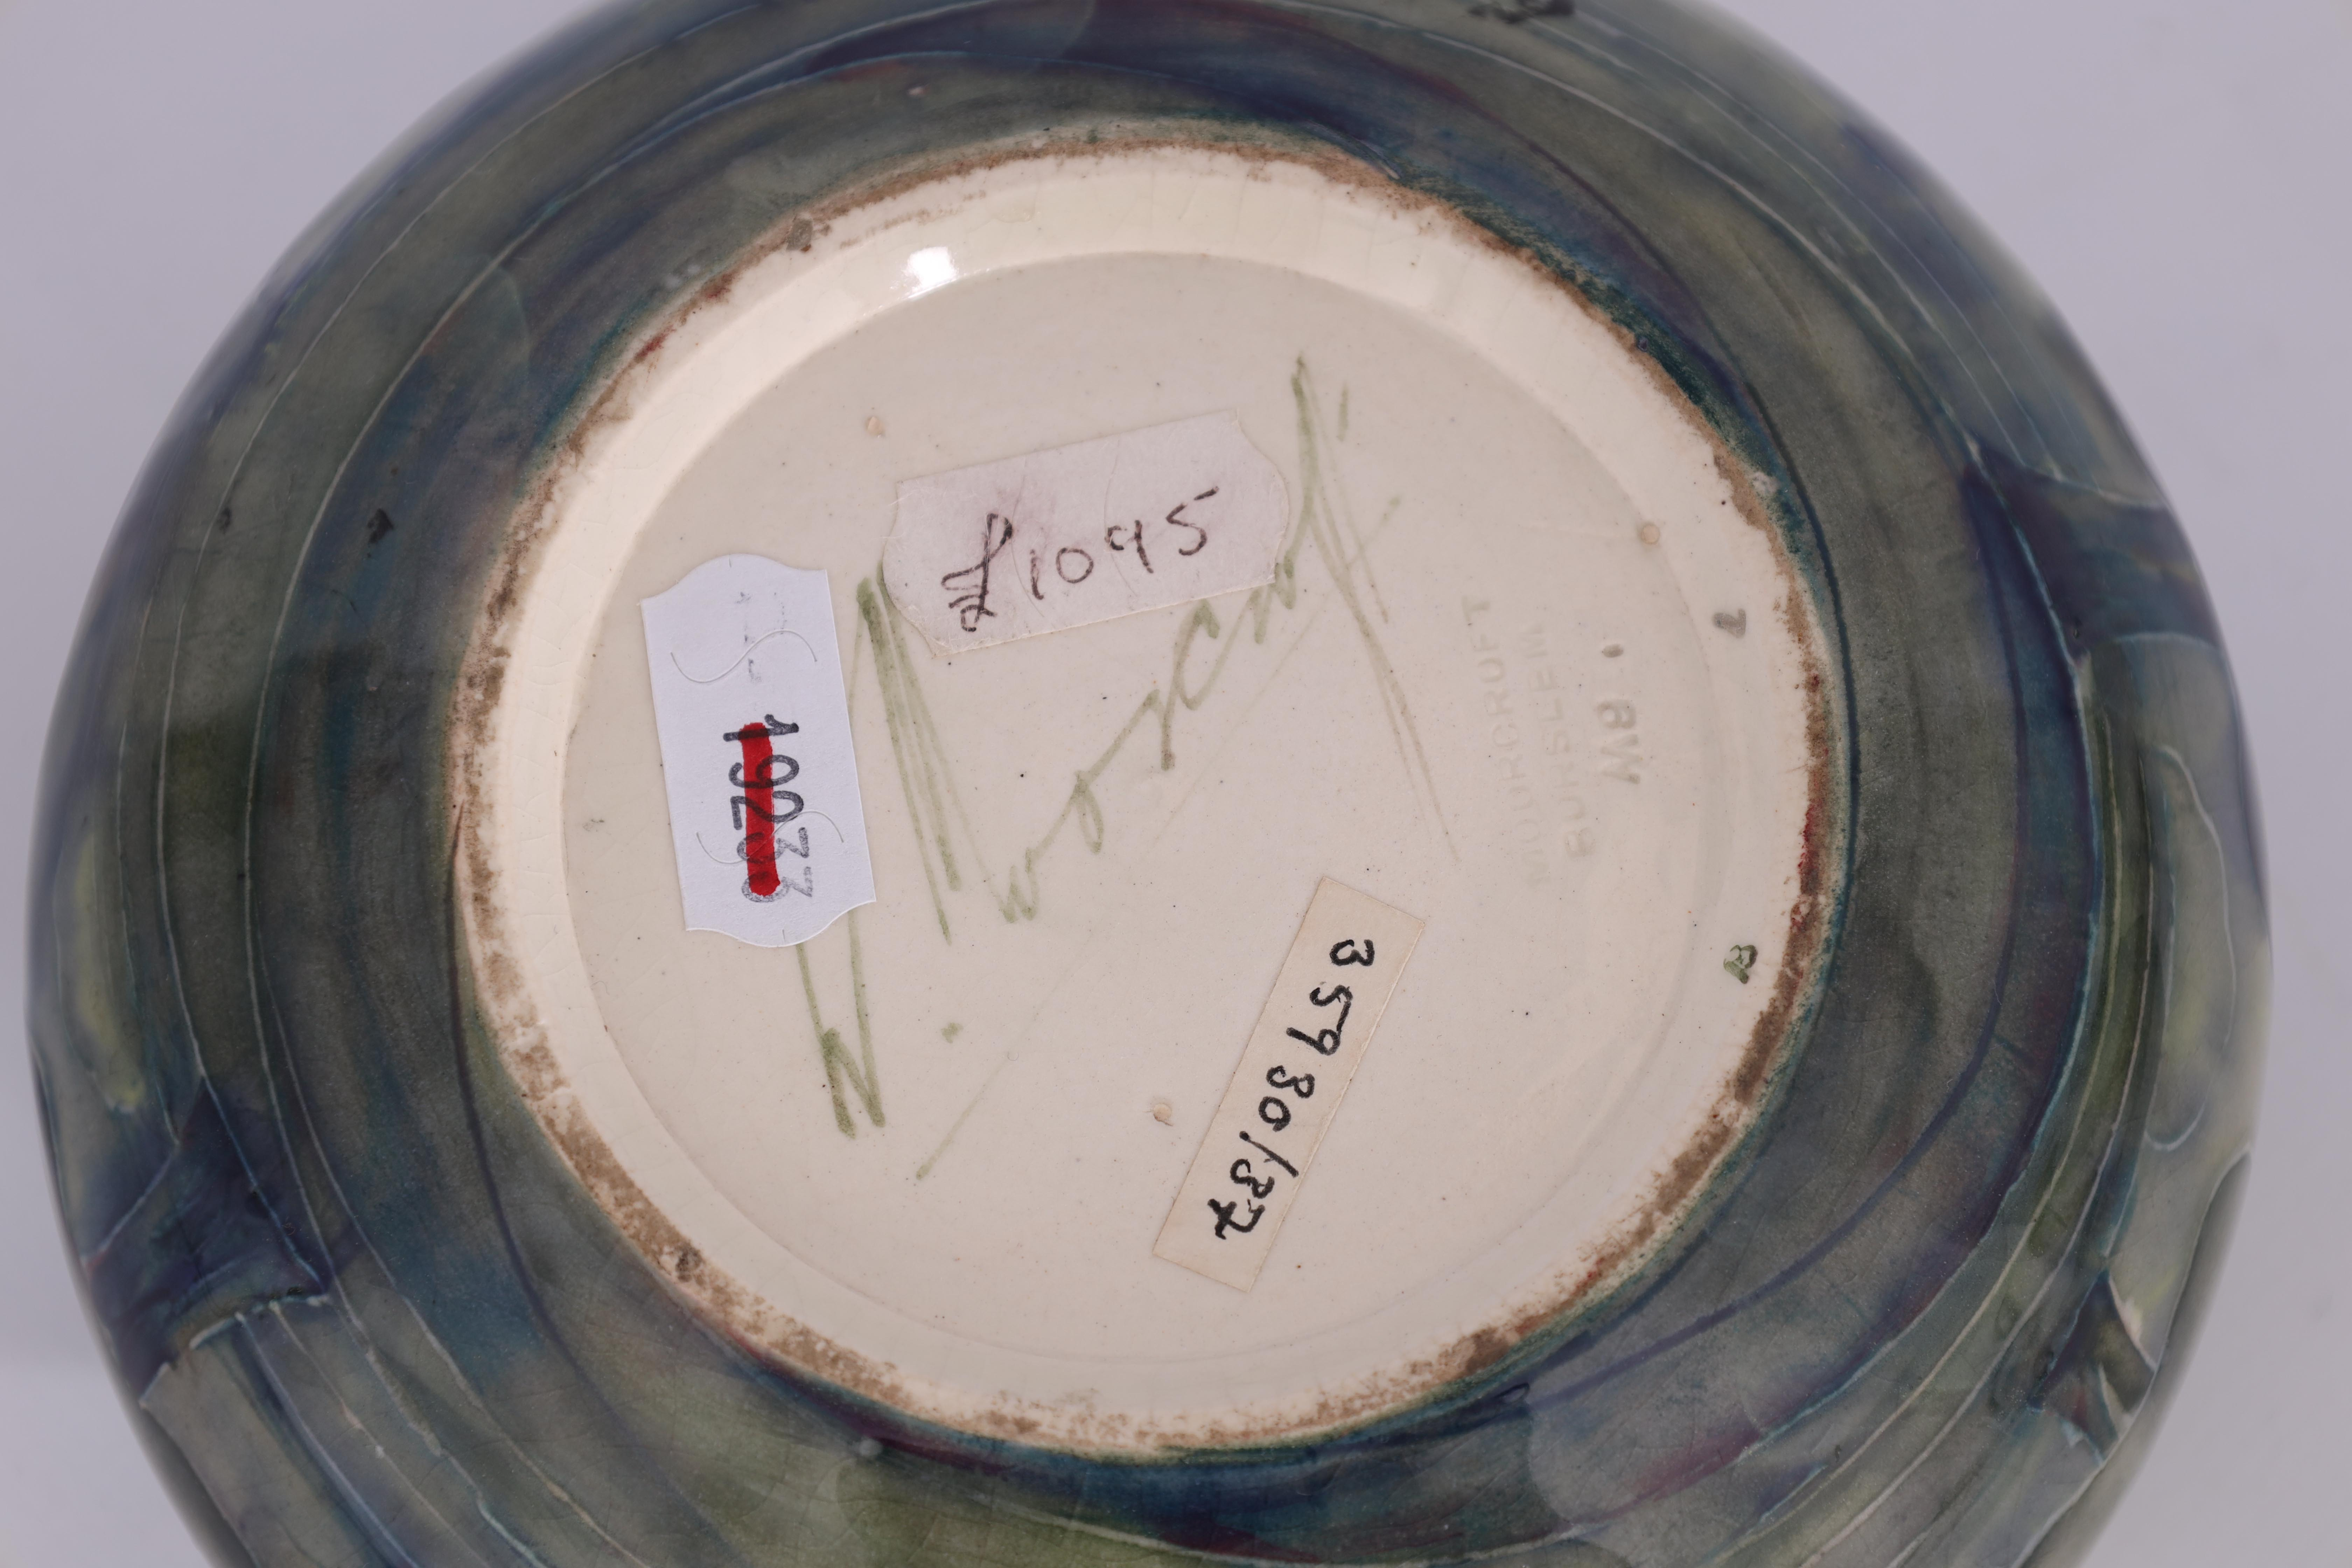 A WILLIAM MOORCROFT BURSLEM SHALLOW BOWL WITH CURVED RIM decorated in the Hazeldene pattern in - Image 4 of 5